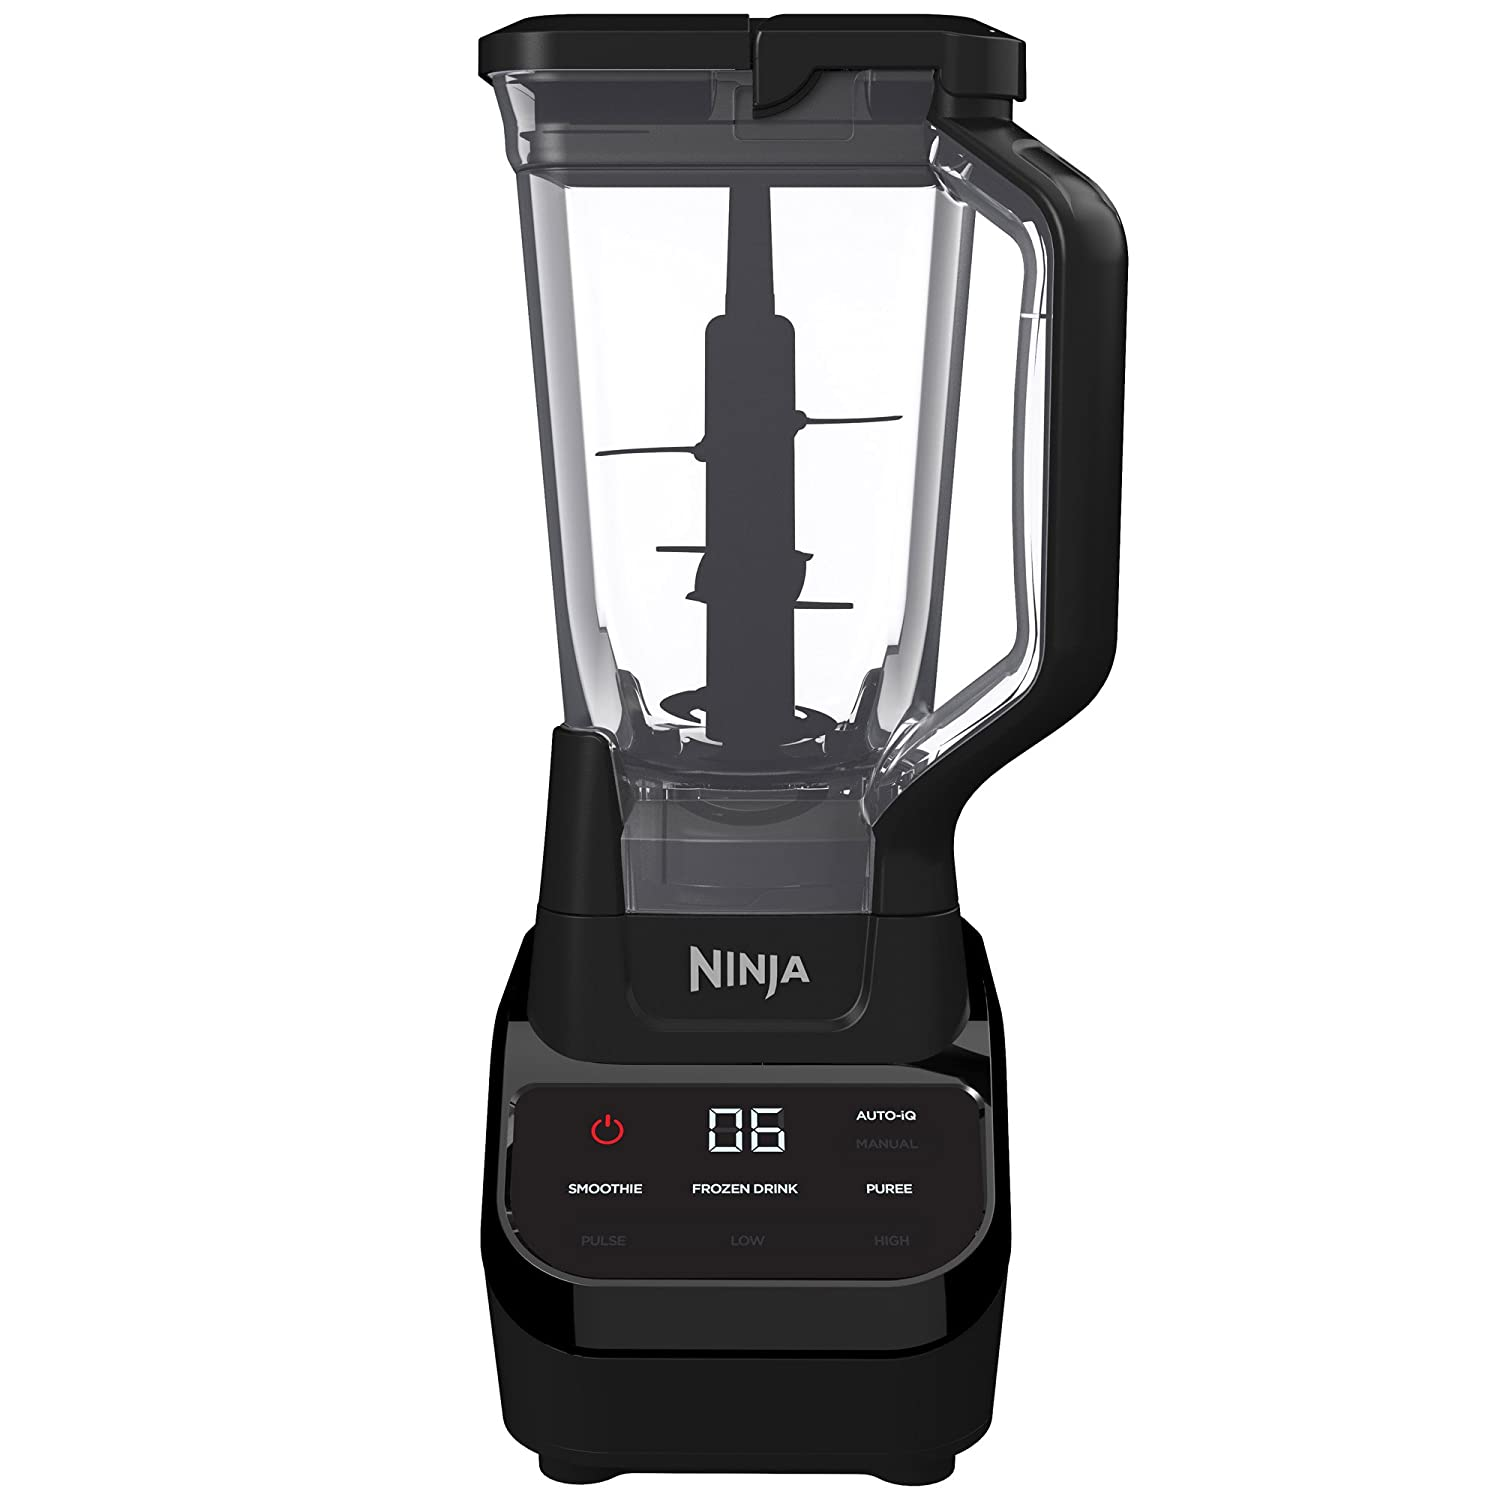 Ninja Ct610 Blender 72 Oz Black: Amazon